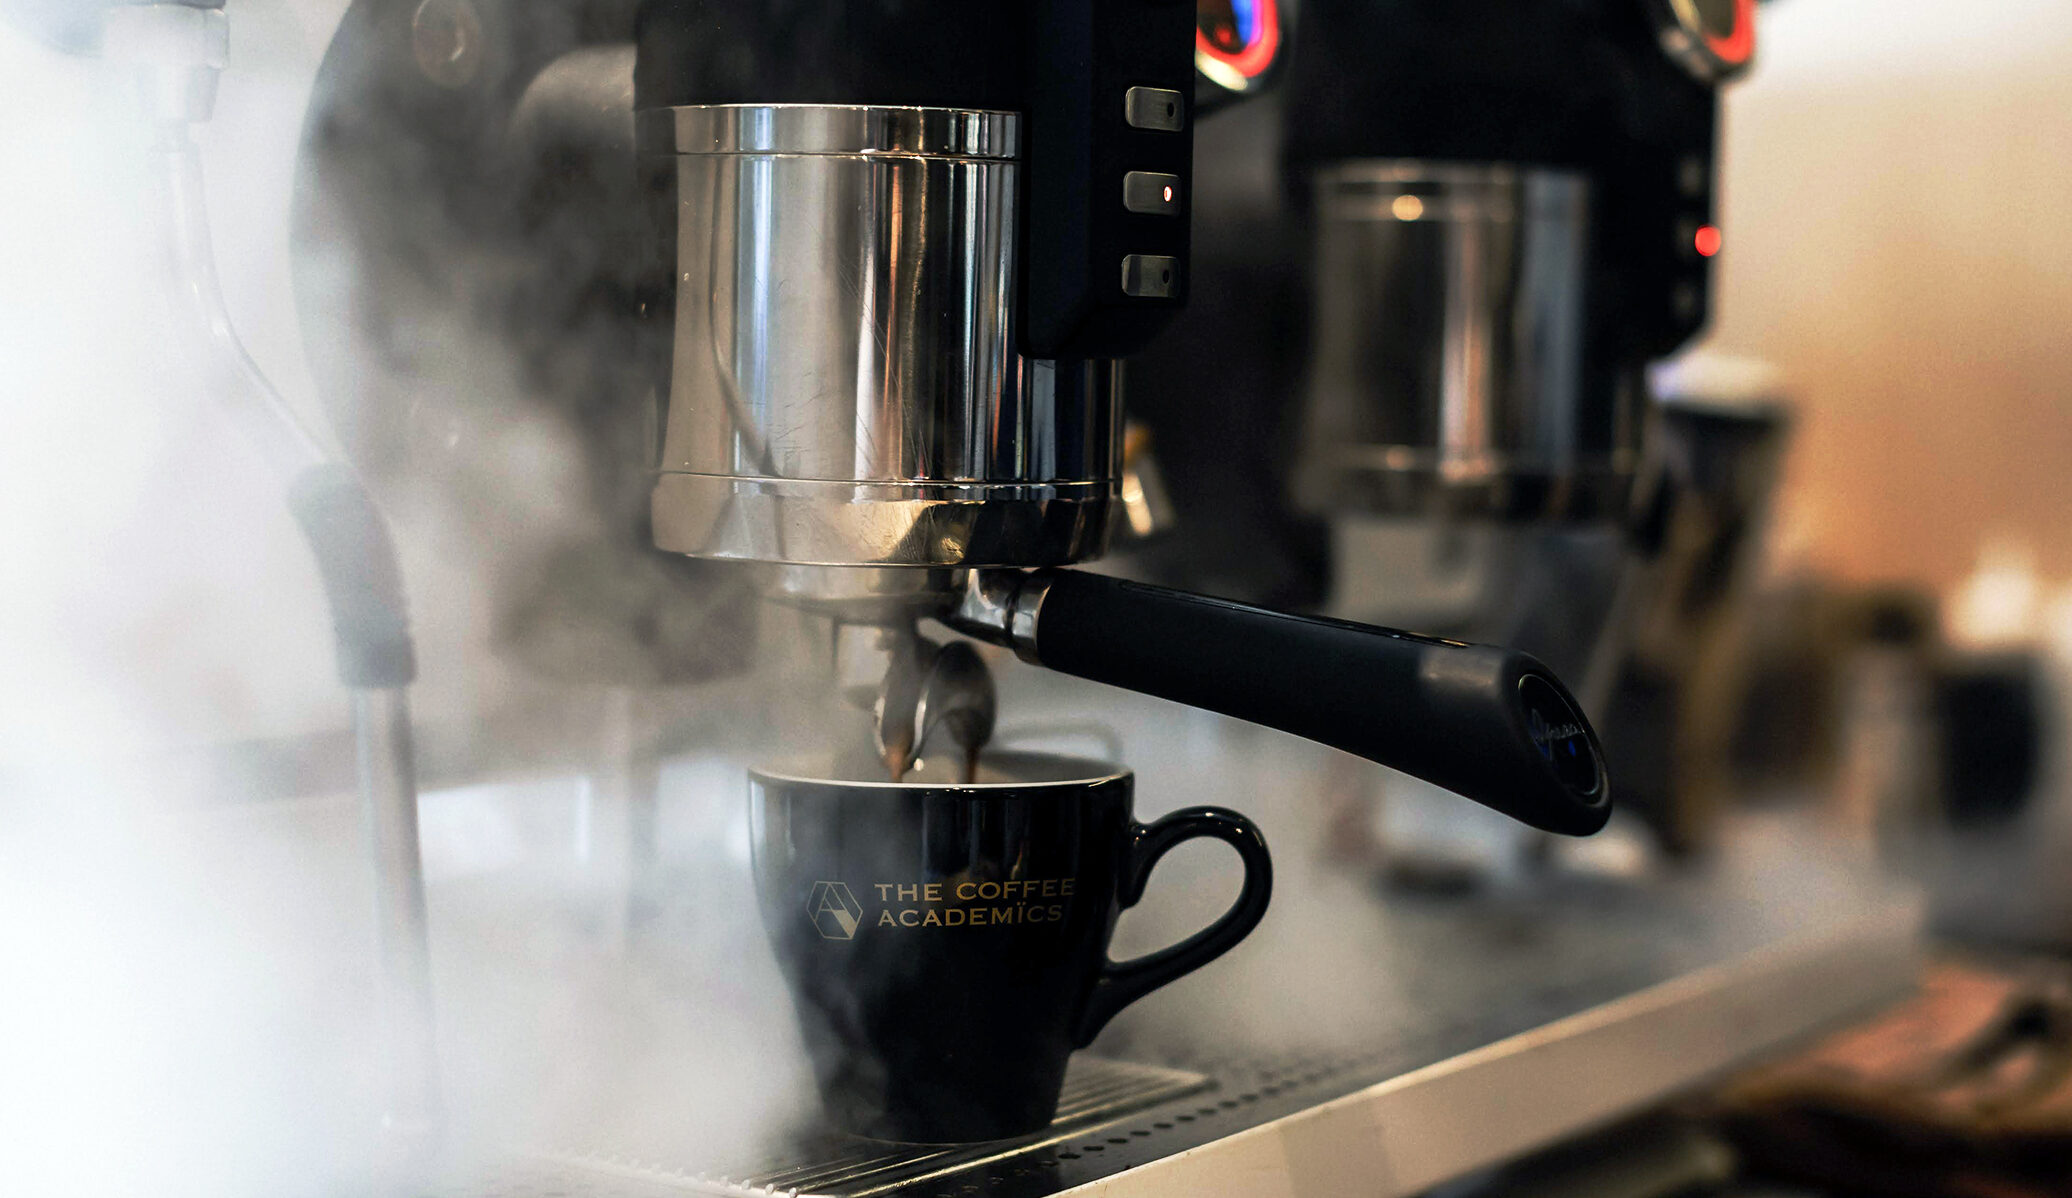 Espresso Machine and Branded Cup